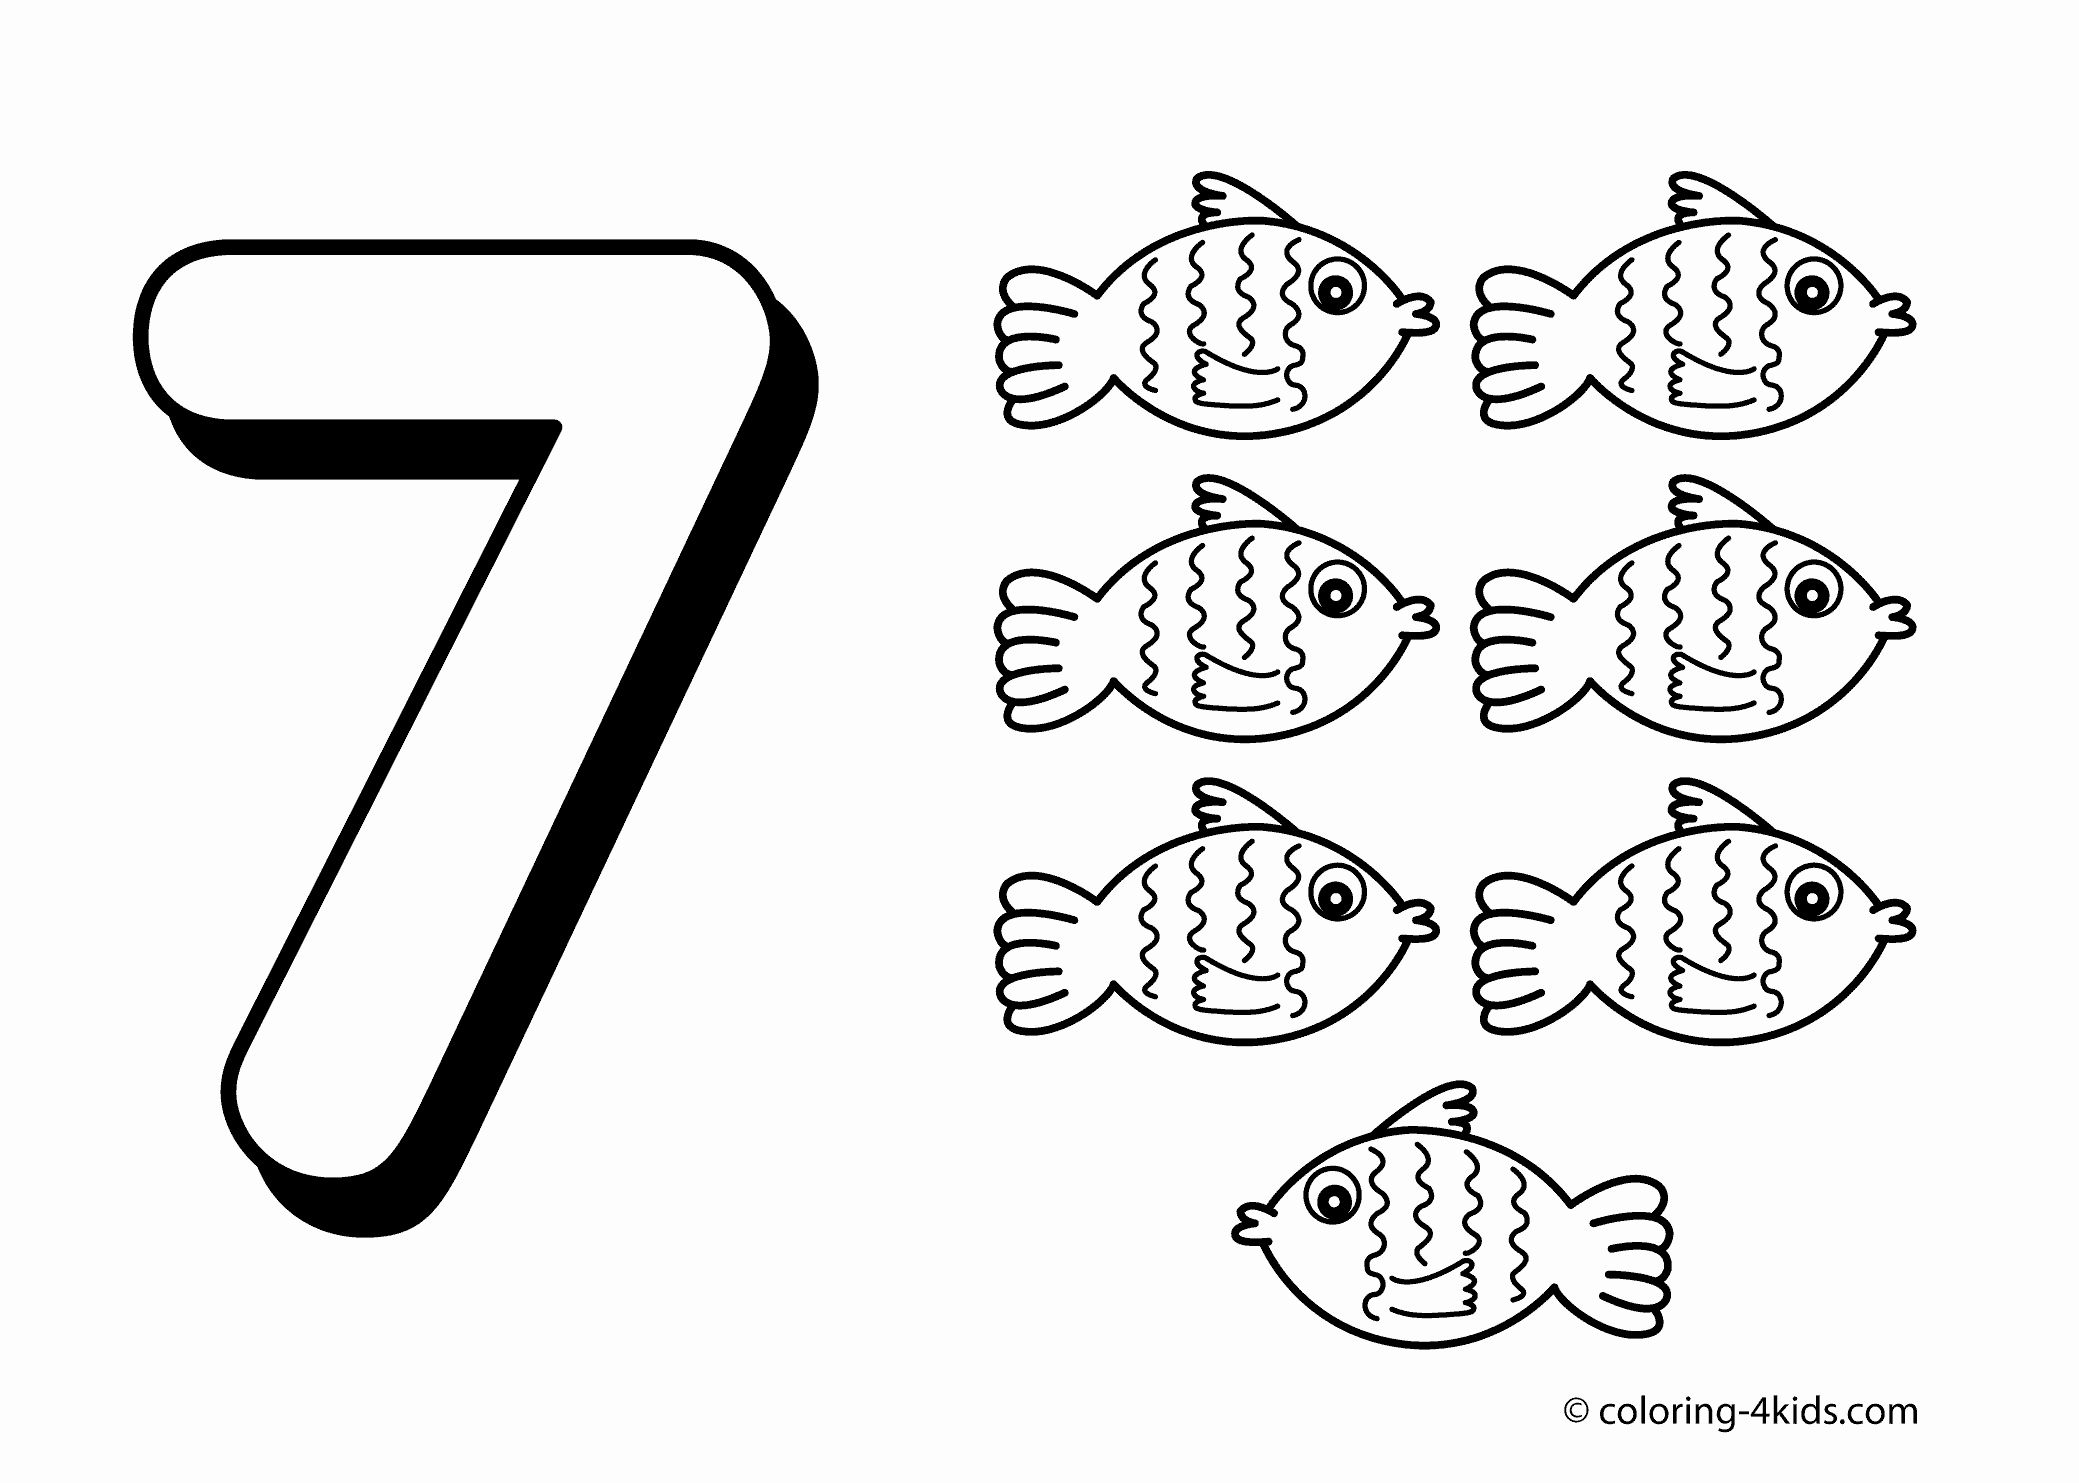 Number Coloring Activity Sheets Inspirational Number 7 Coloring